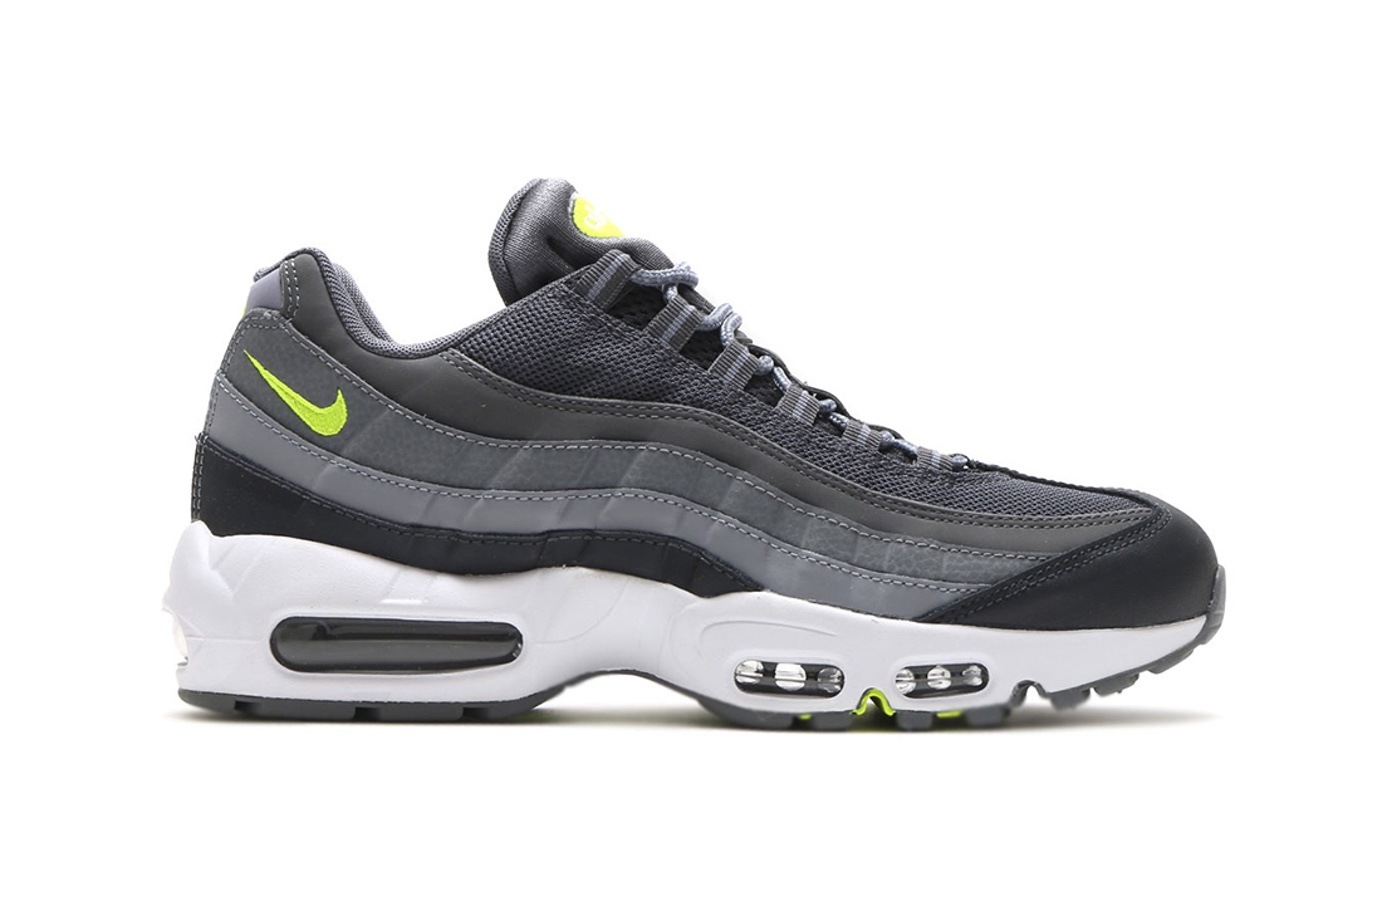 grossiste a2622 32381 La Nike Air Max 95